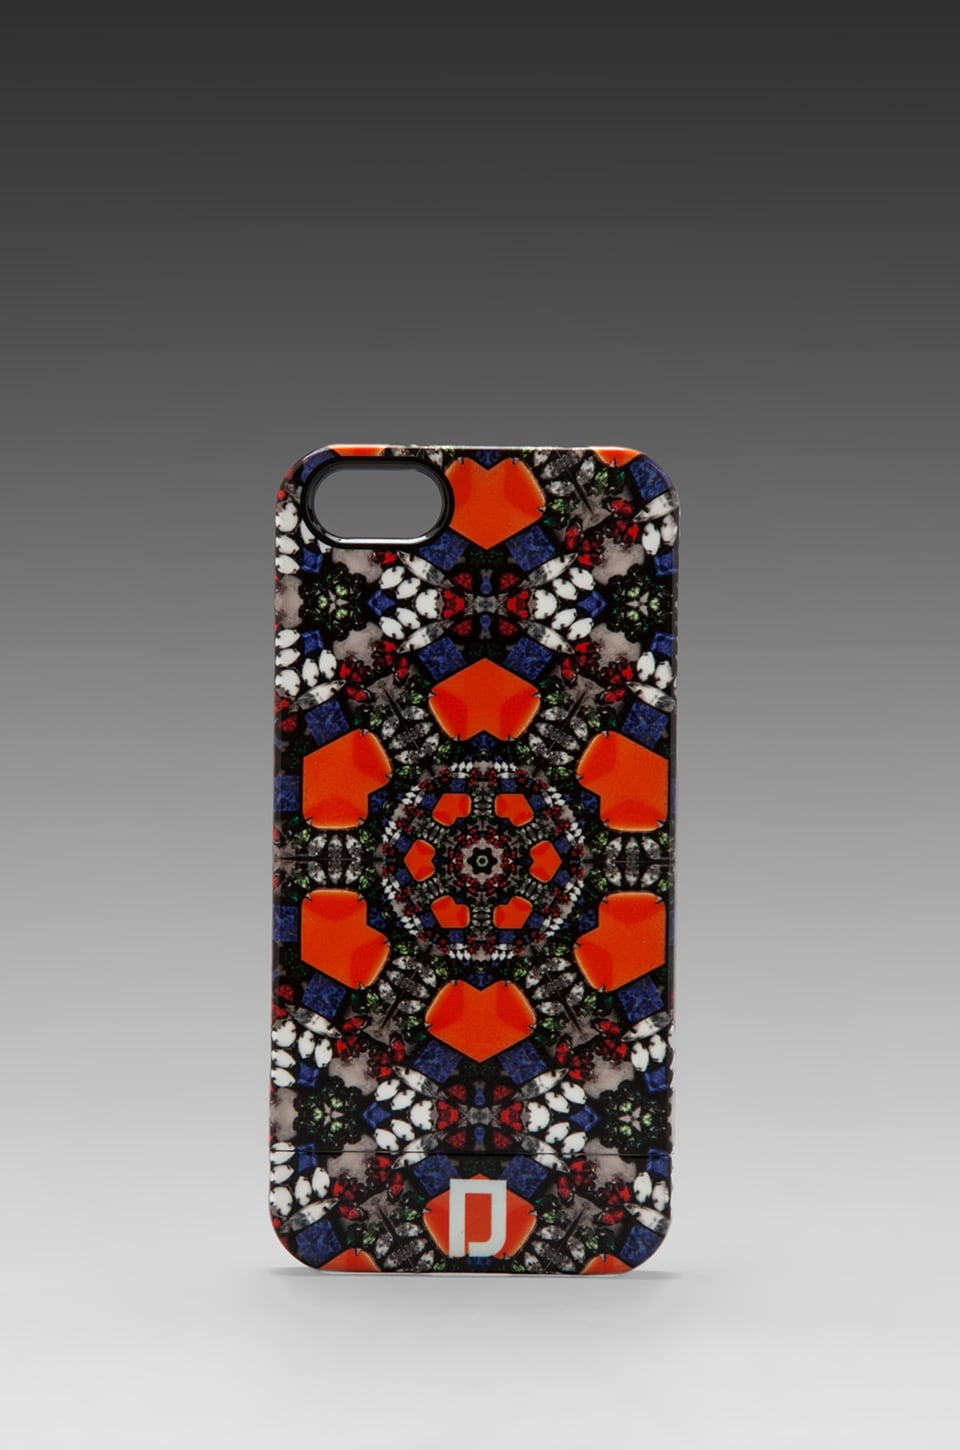 DANNIJO iPhone 5 Case in Rigby